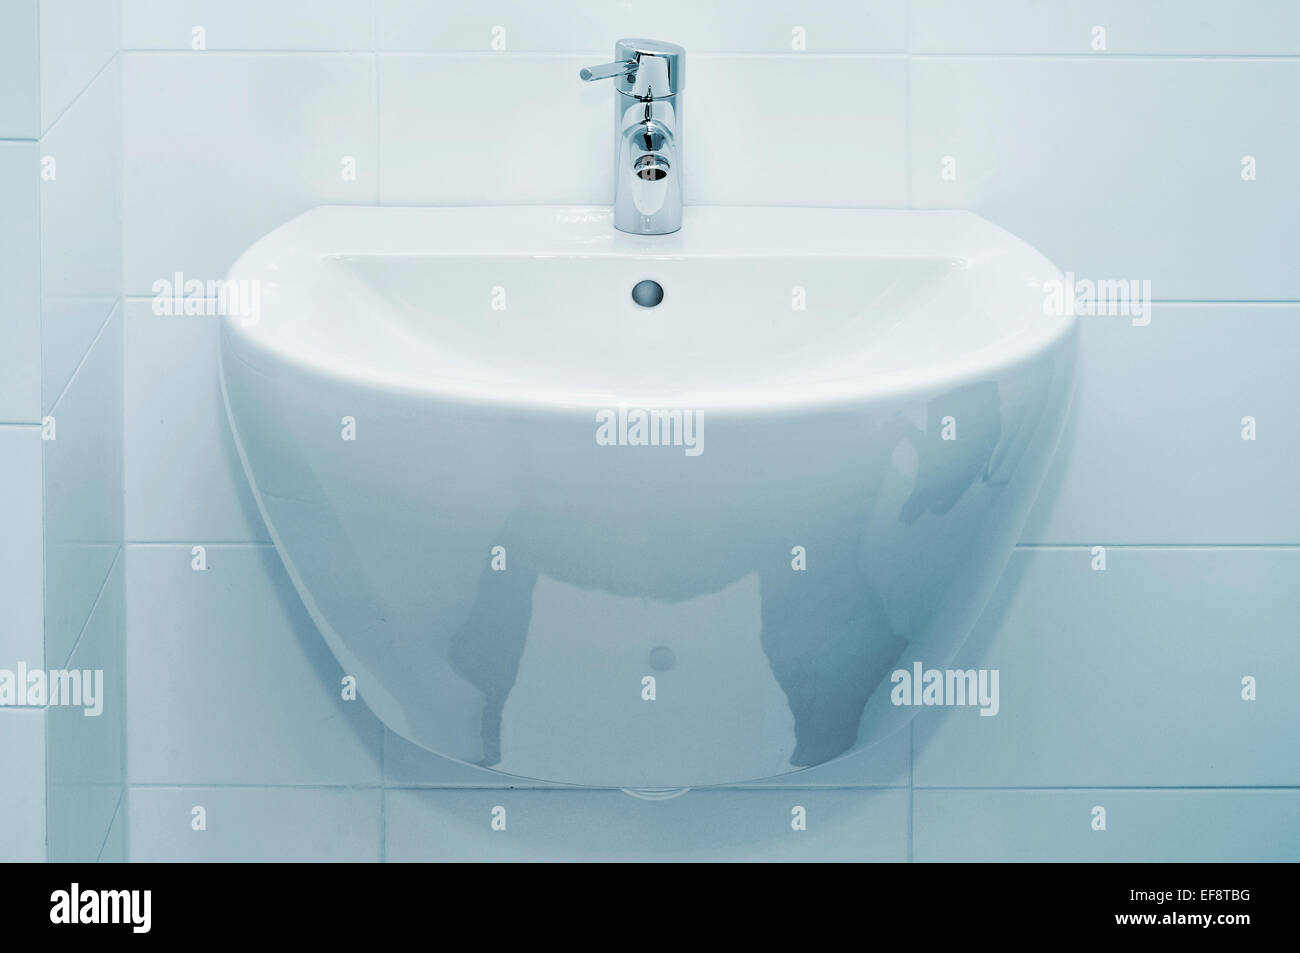 a ceramic bathroom sink - Stock Image